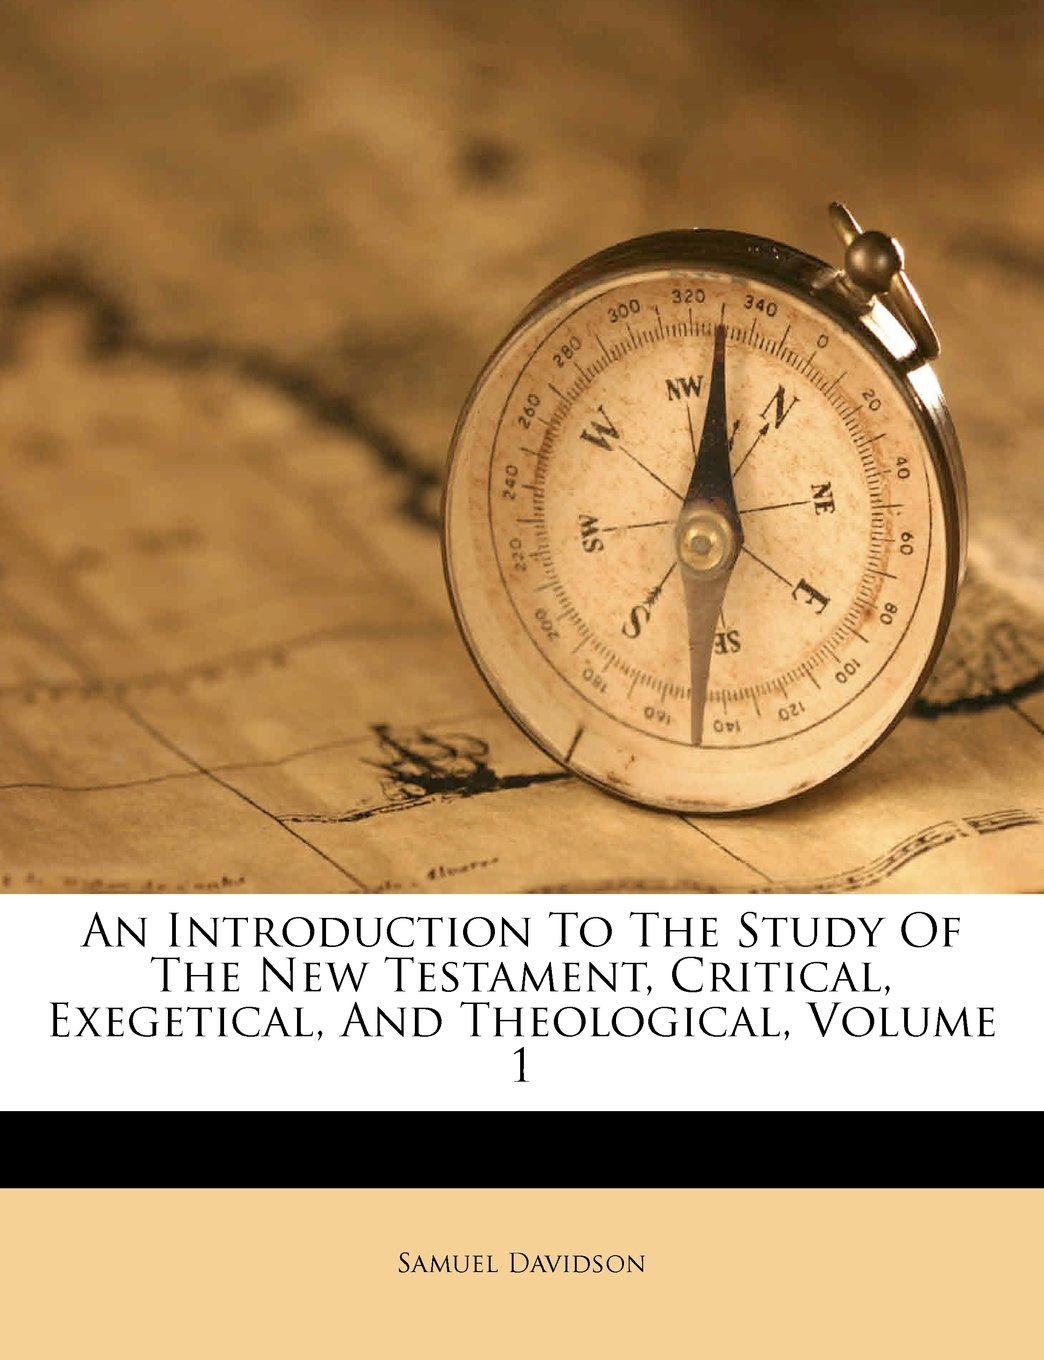 An Introduction To The Study Of The New Testament, Critical, Exegetical, And Theological, Volume 1 (Afrikaans Edition) pdf epub